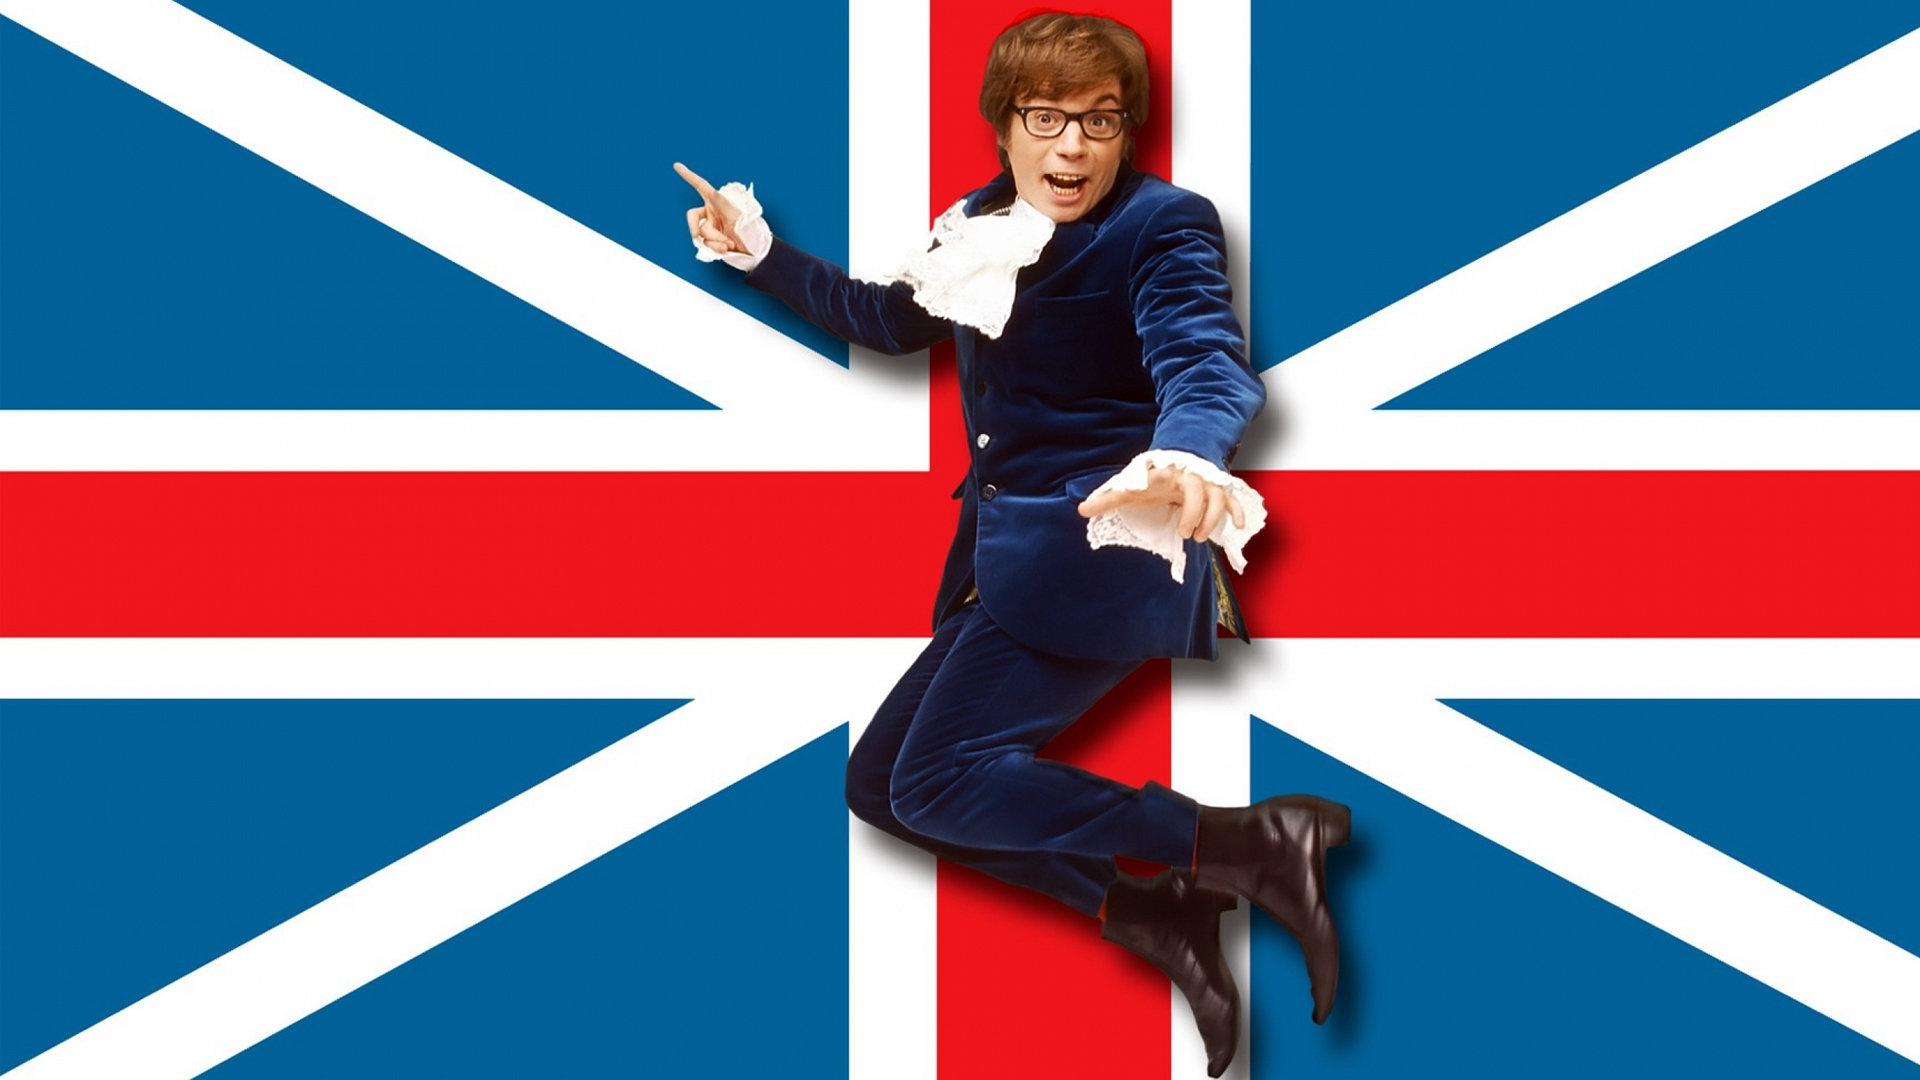 austin-powers-collection-52d49507016da.jpg